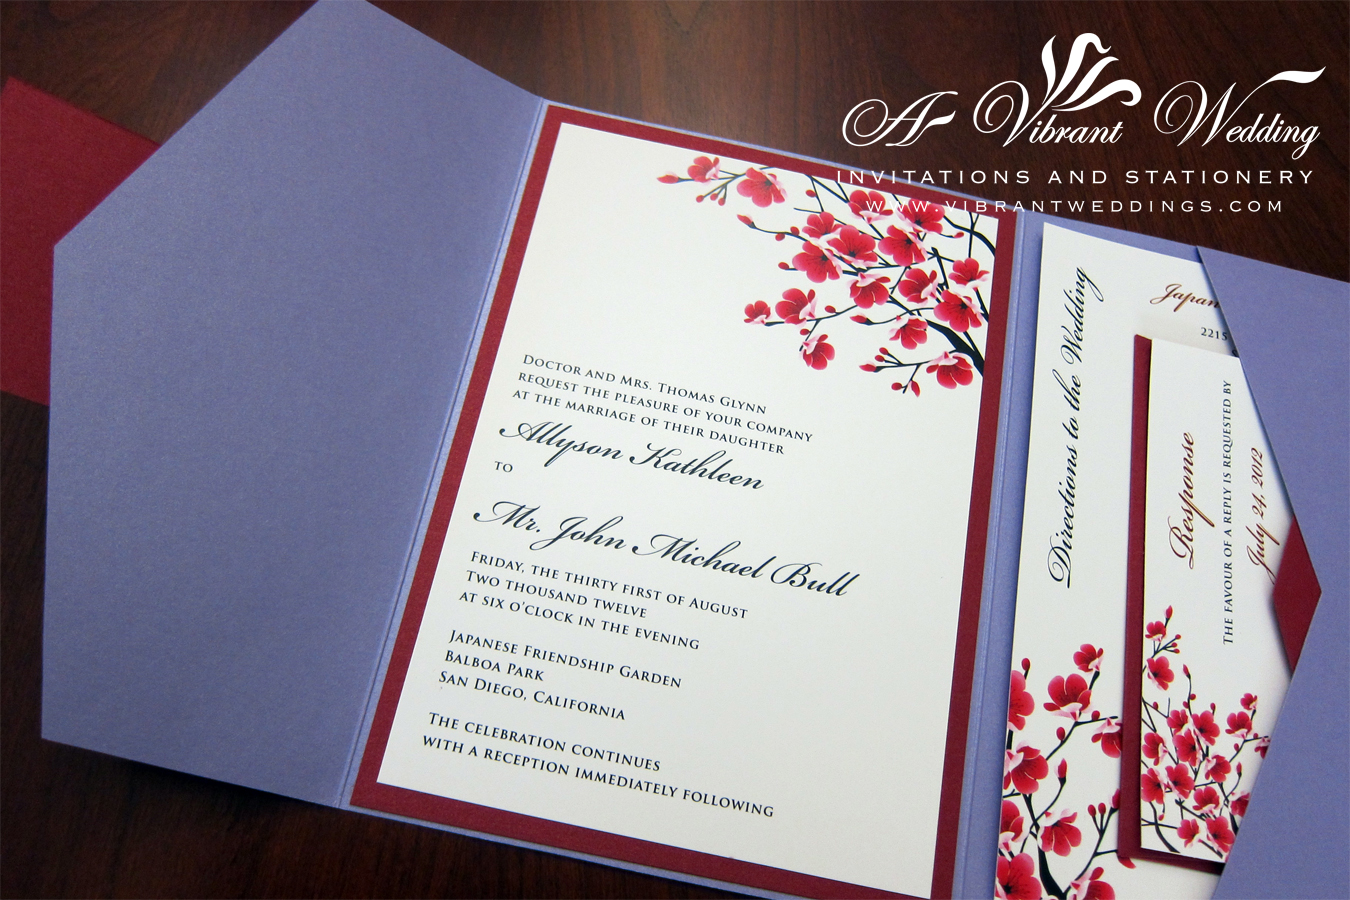 Purple designs a vibrant wedding wedding invitation lavender red with cherry blossom design stopboris Image collections